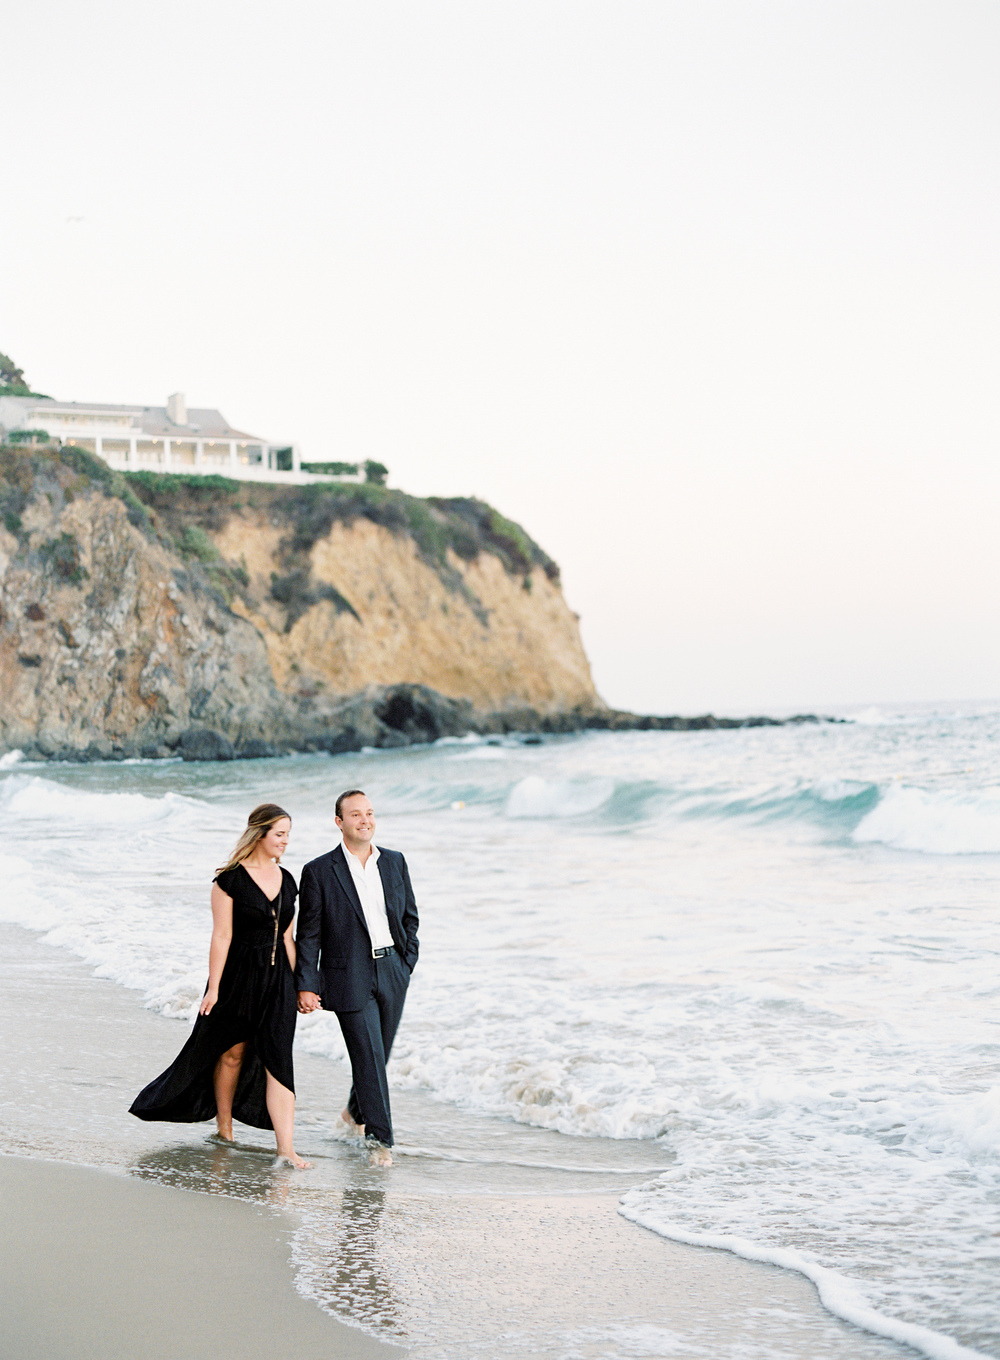 Laguna-Beach-Engagement-Film-Wedding-Orange-County-115.jpg